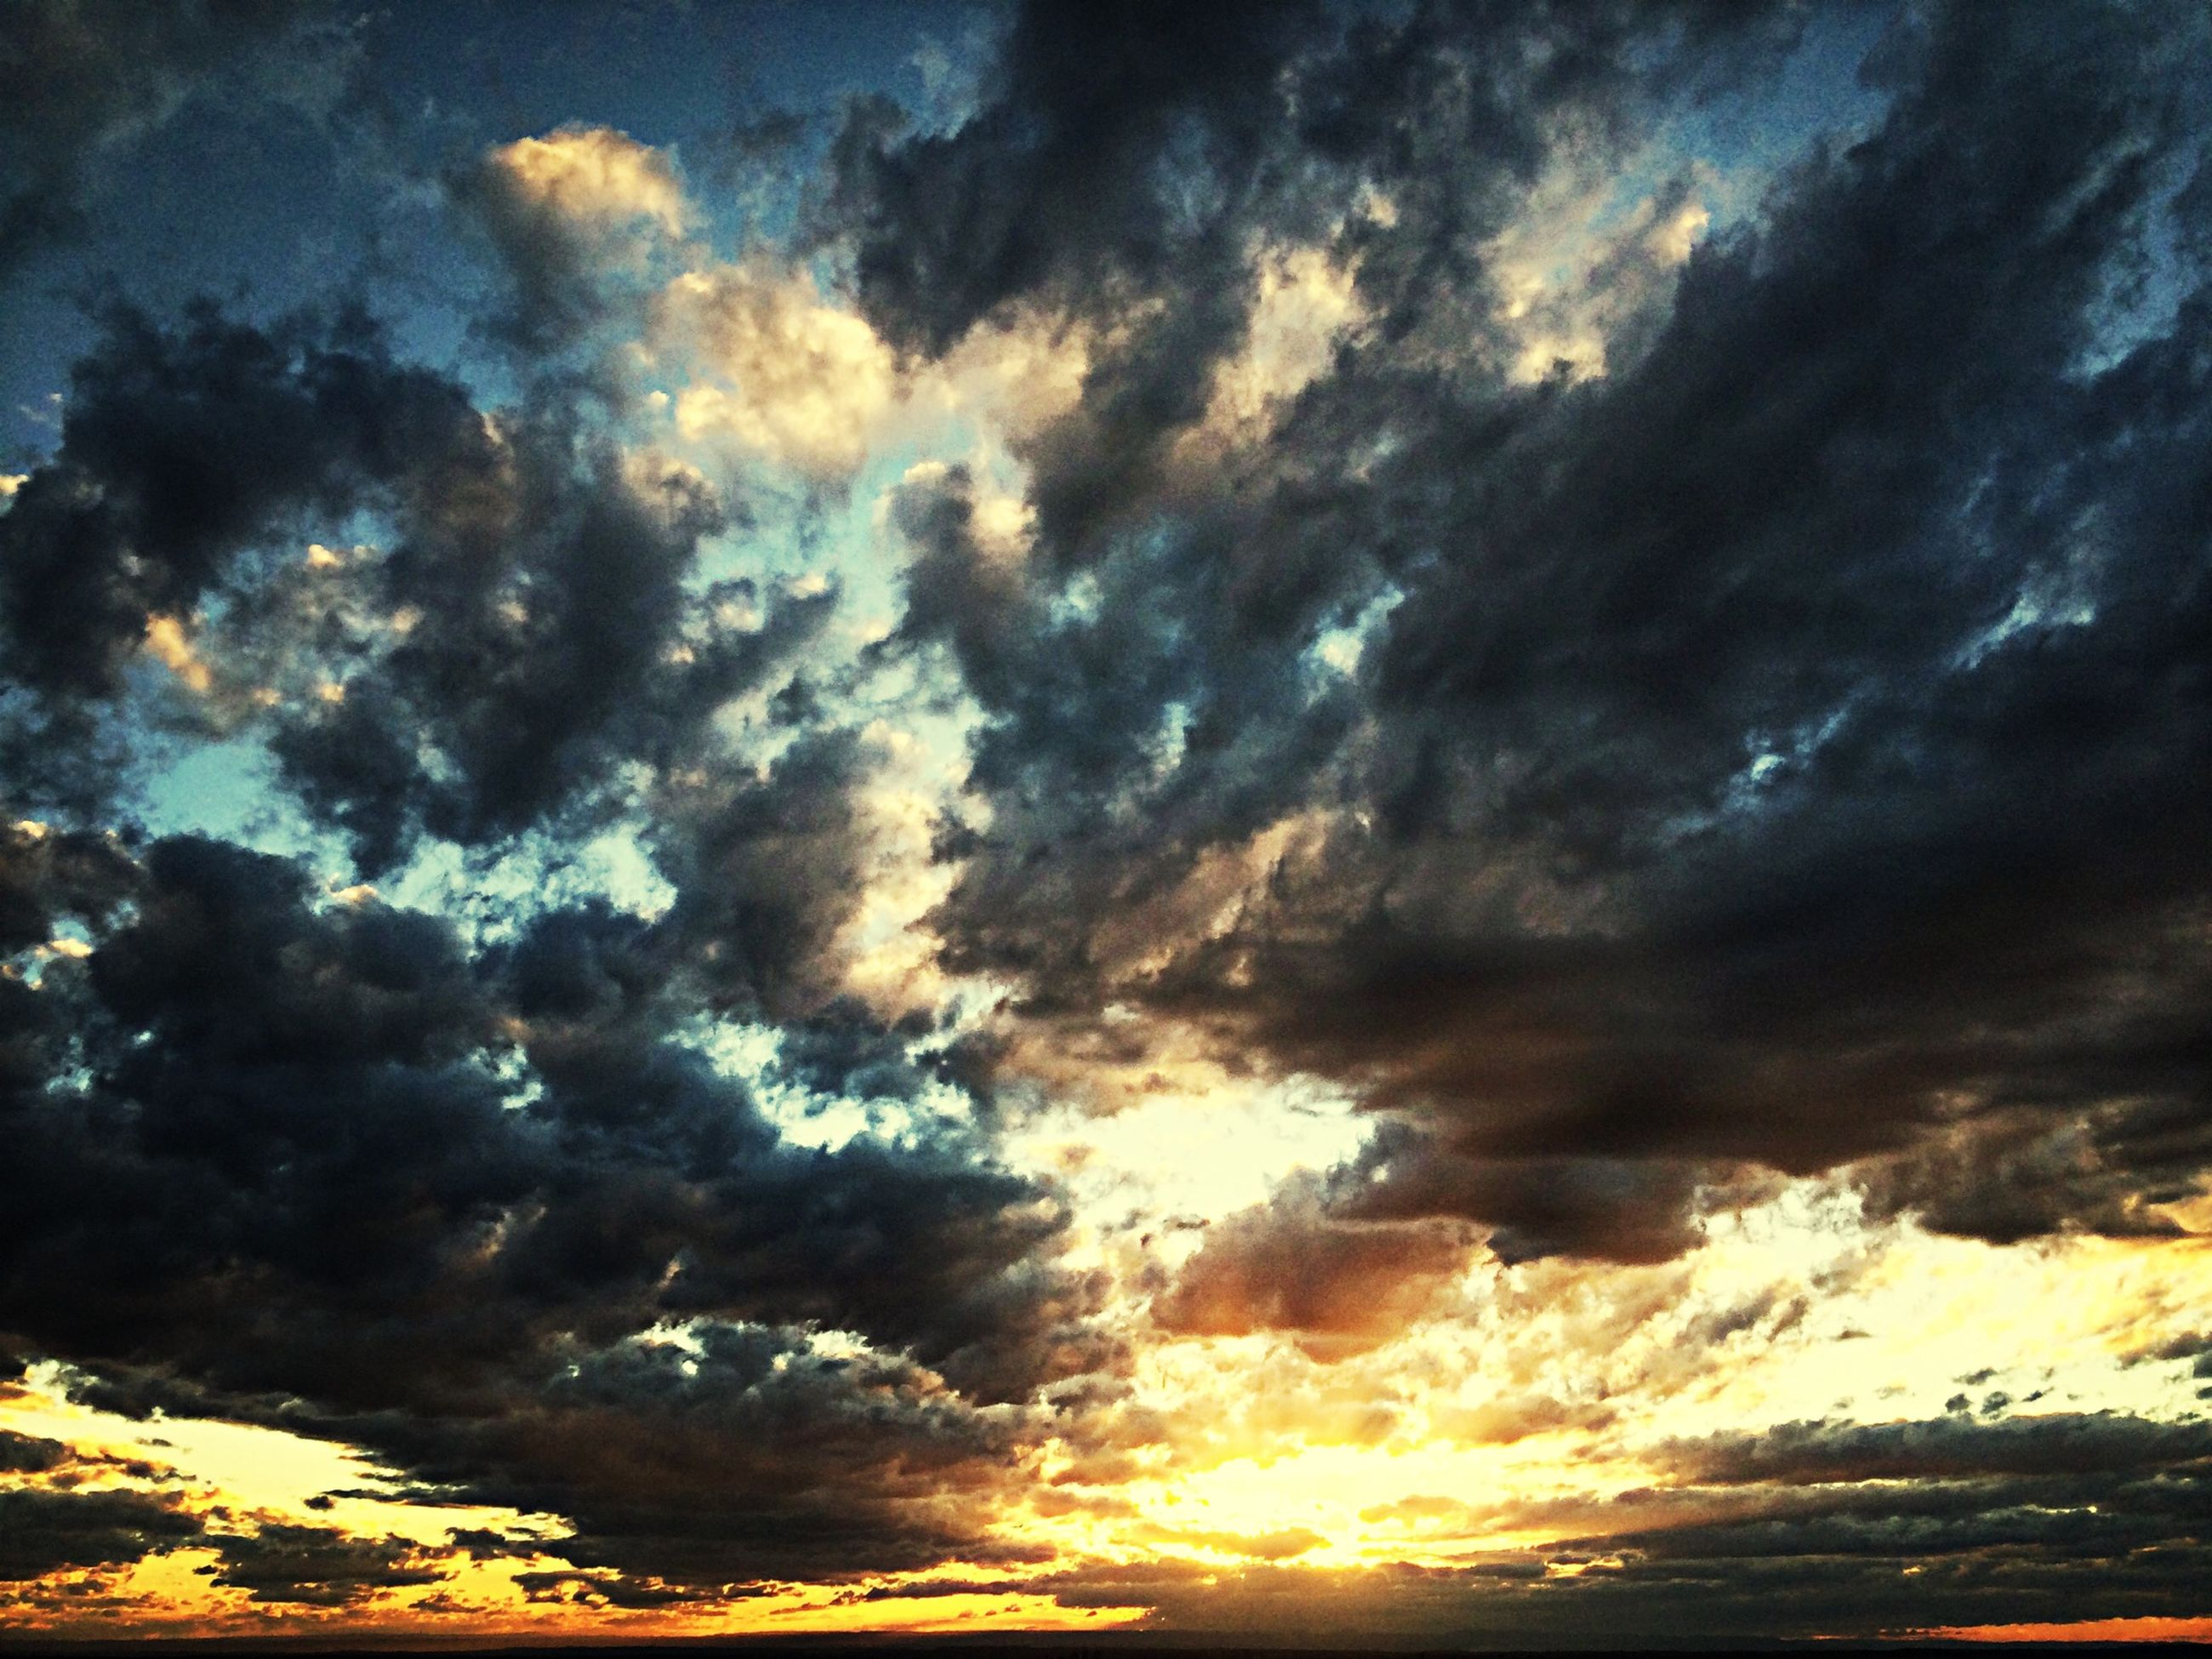 sky, cloud - sky, beauty in nature, scenics, sunset, tranquility, tranquil scene, cloudy, dramatic sky, nature, idyllic, orange color, low angle view, cloud, weather, cloudscape, overcast, majestic, atmospheric mood, moody sky